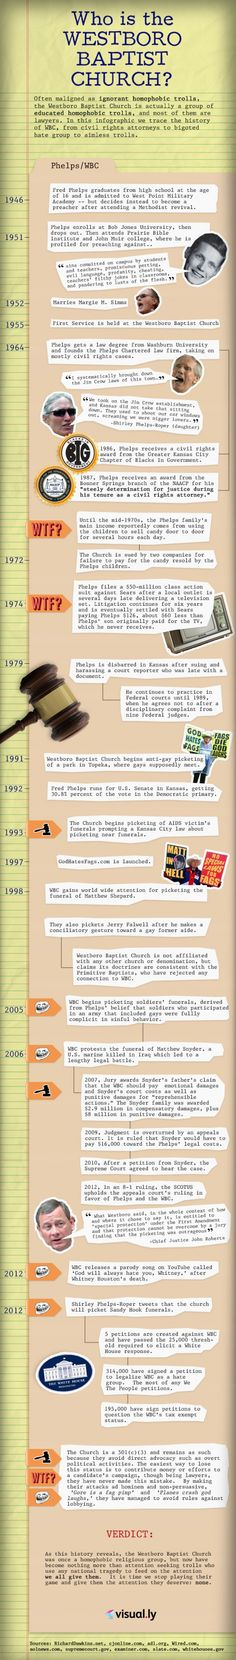 Who is the Westboro Baptist Church? [Infographic]  #WestboroBaptistChurch  #Homophobic  #Trolls  #Infographic